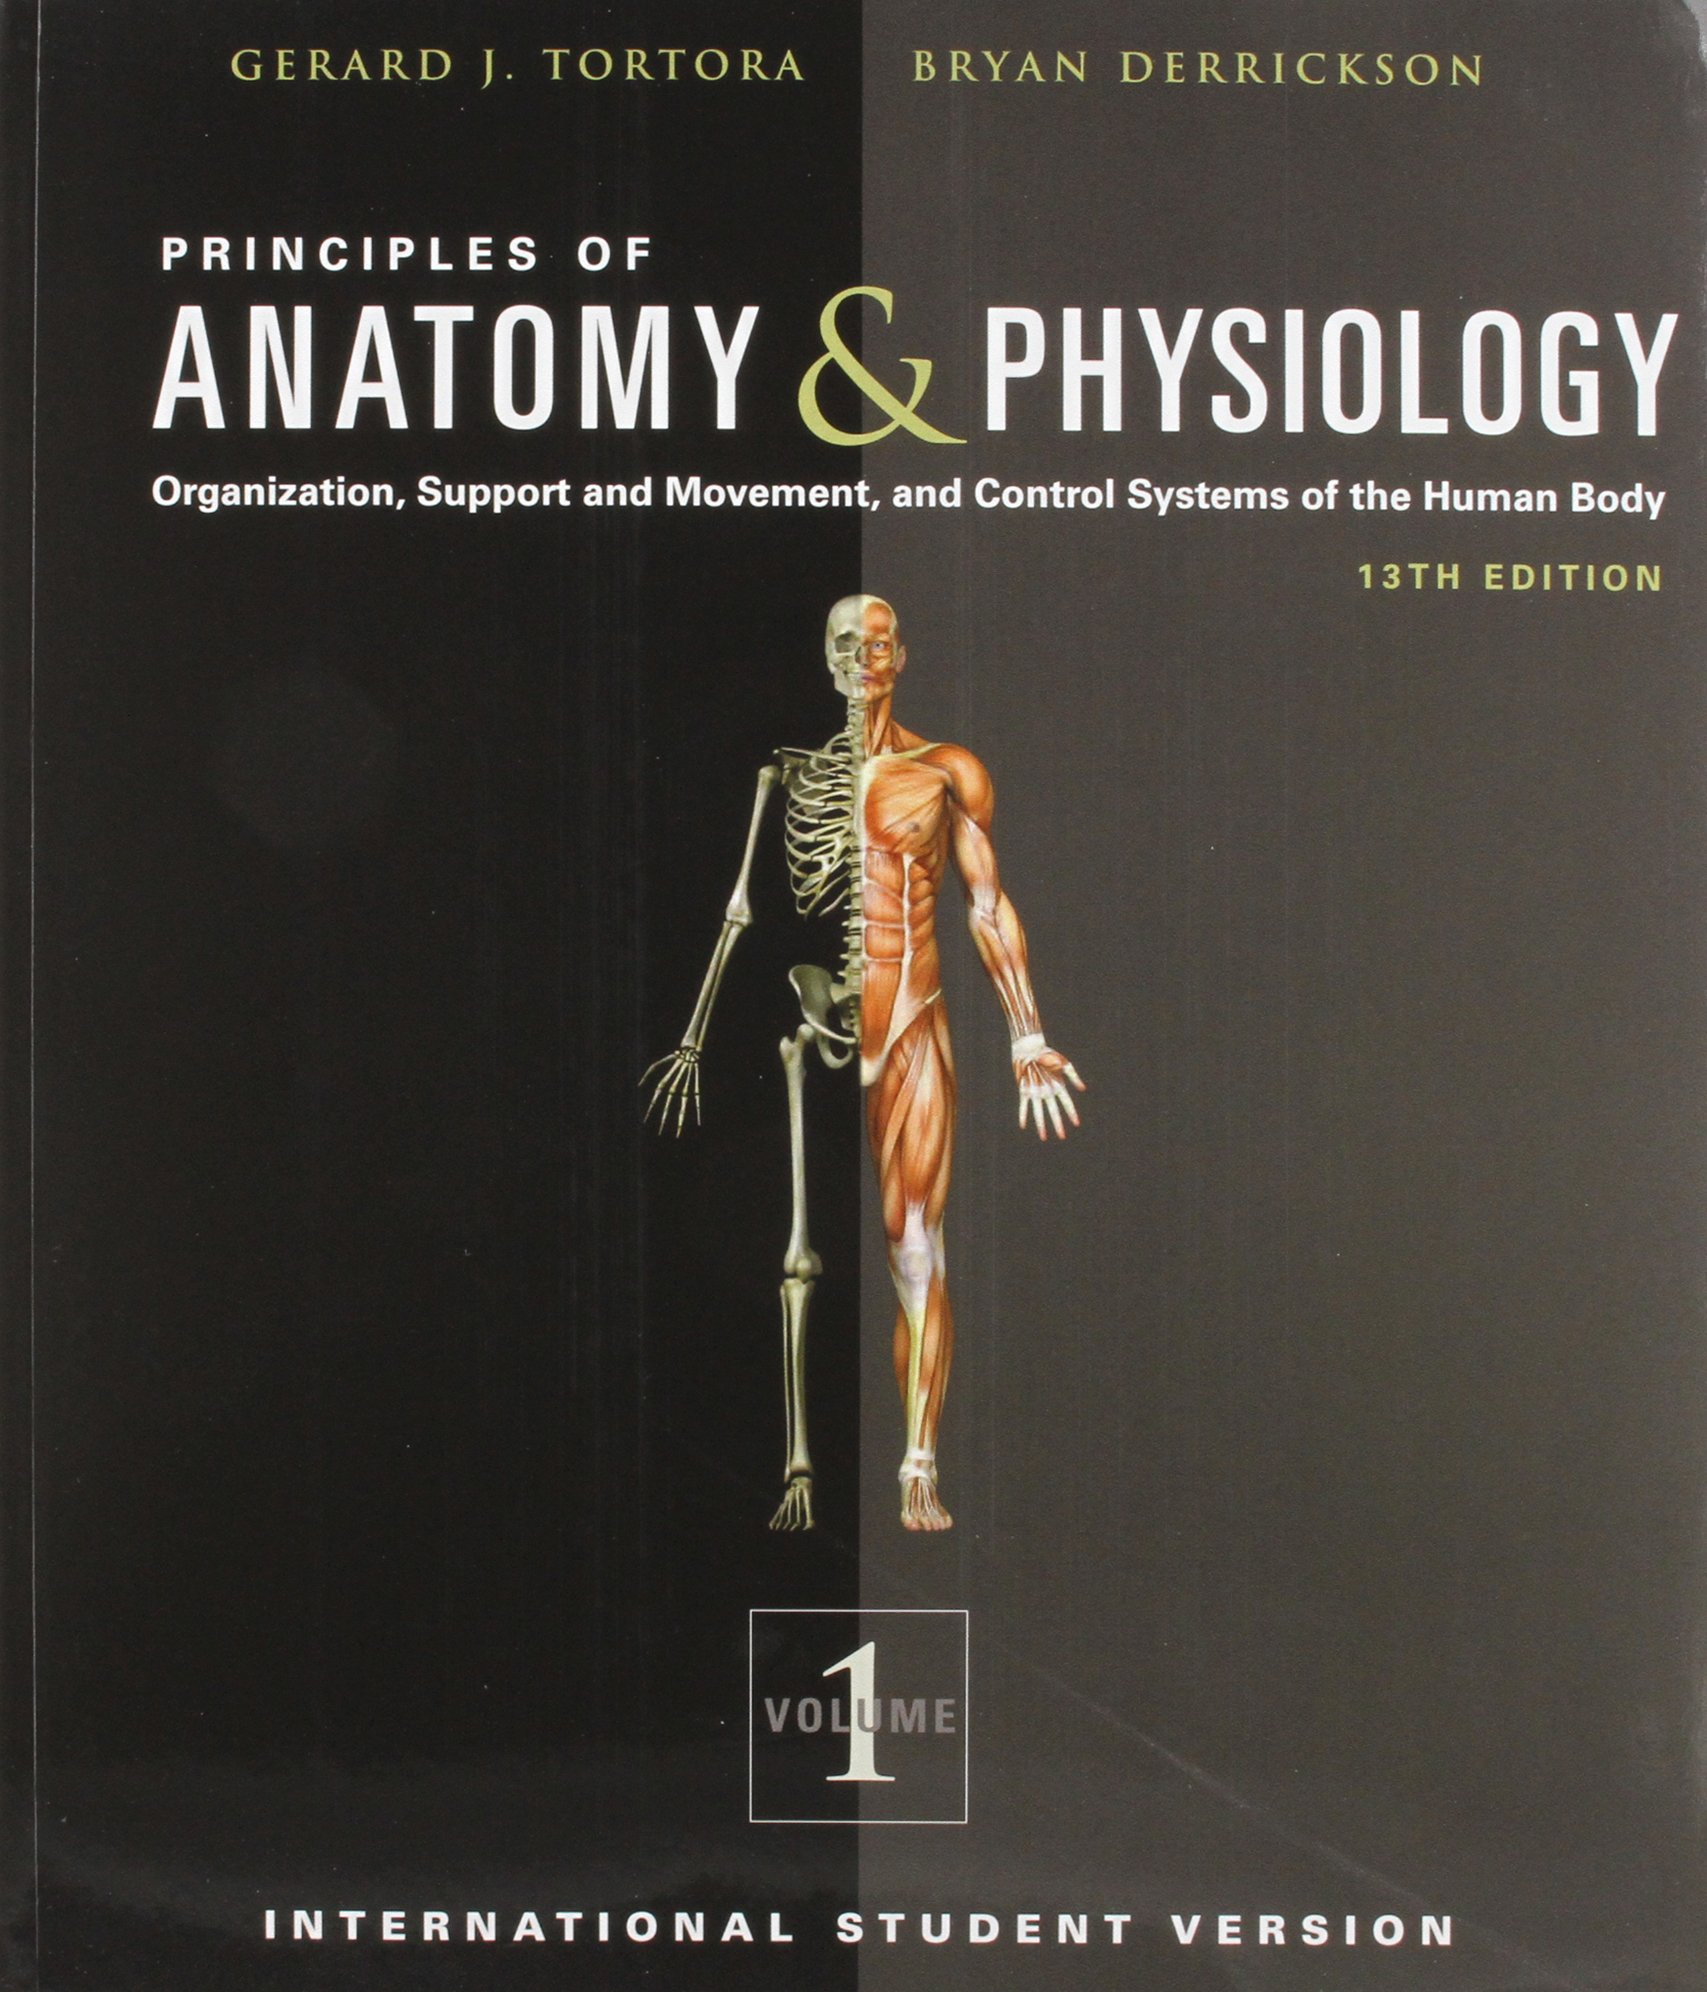 Principles of Anatomy & Physiology 13th: Amazon.co.uk: Gerard J ...